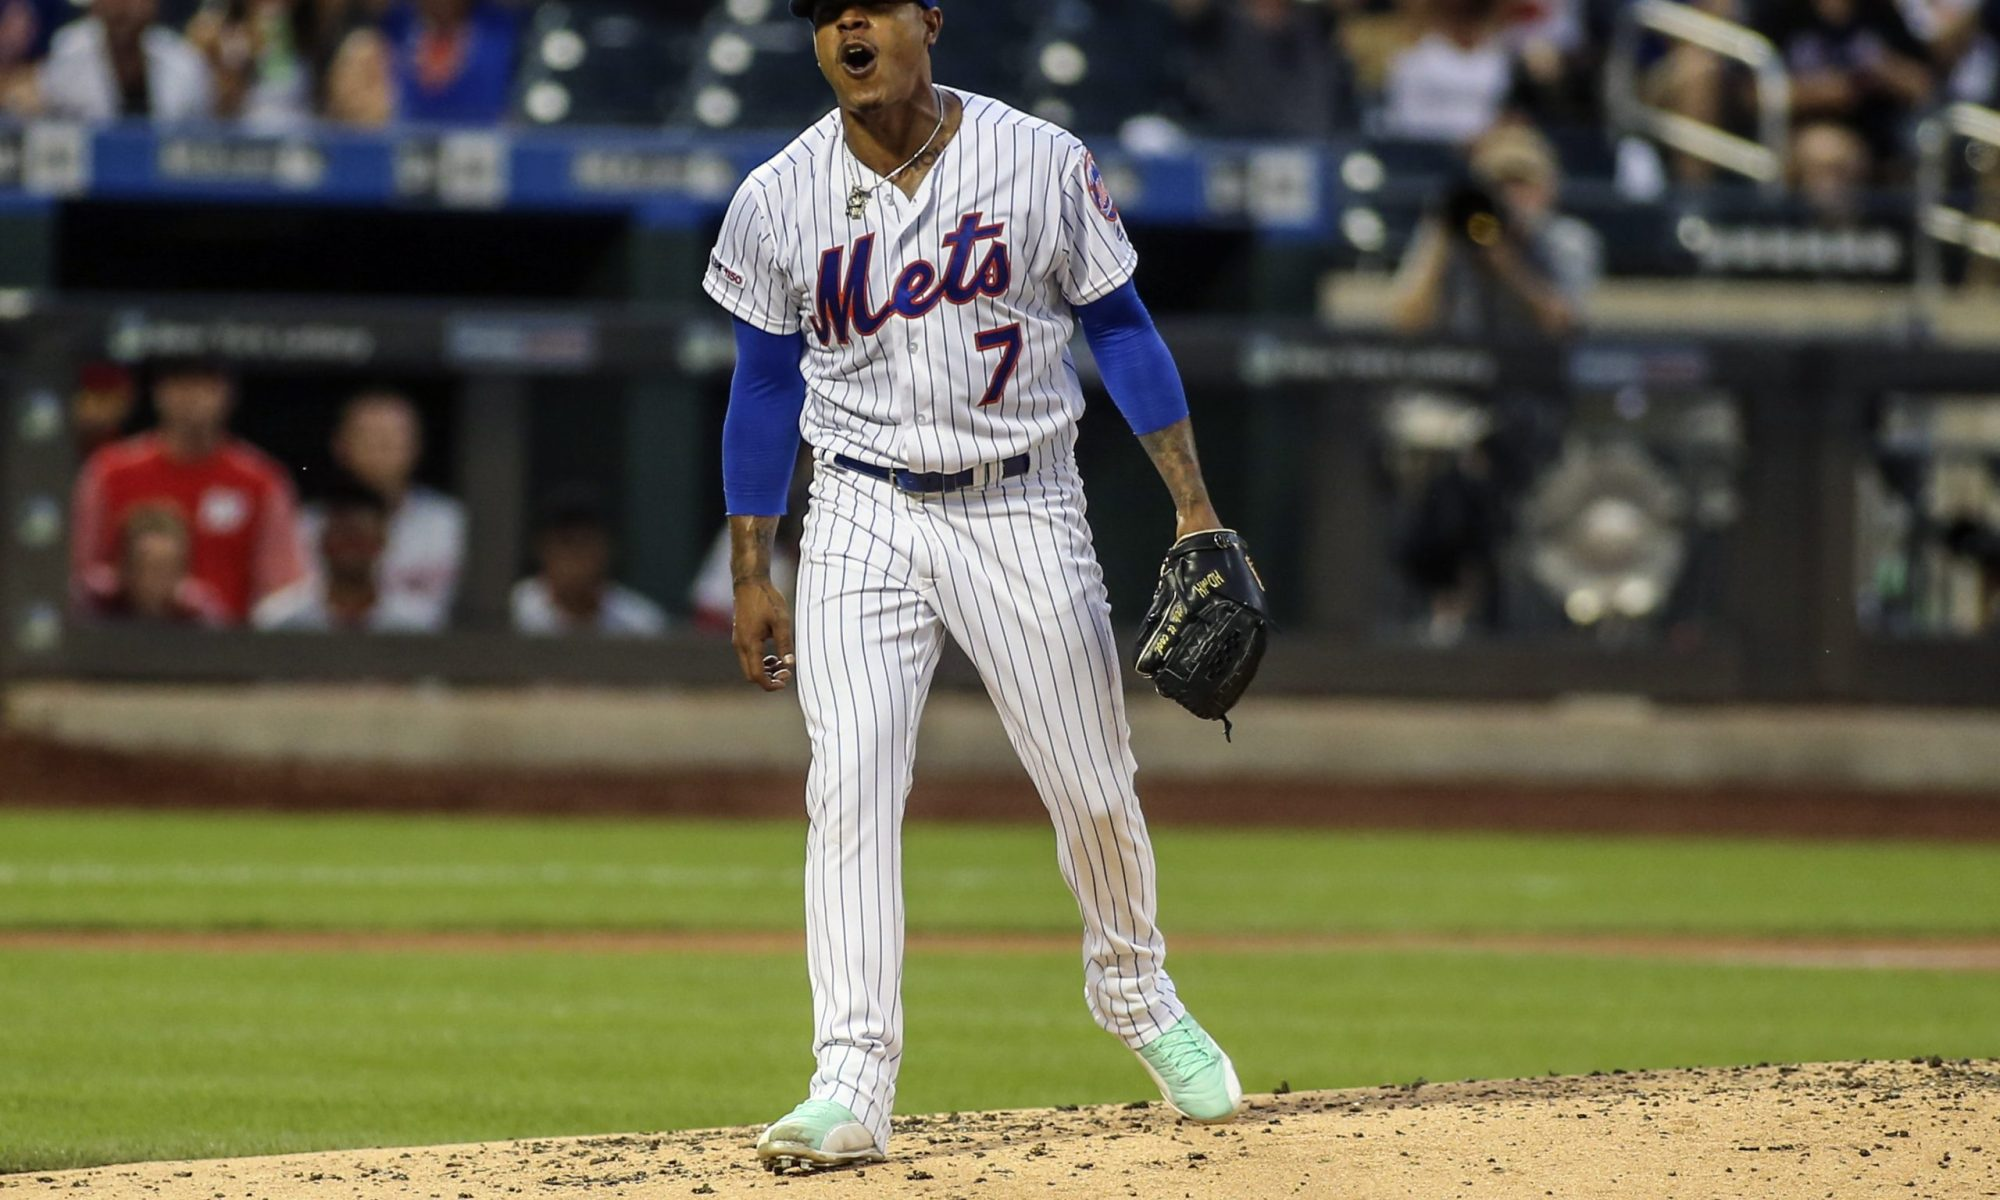 Should the Yankees make a run at Marcus Stroman in free agency?